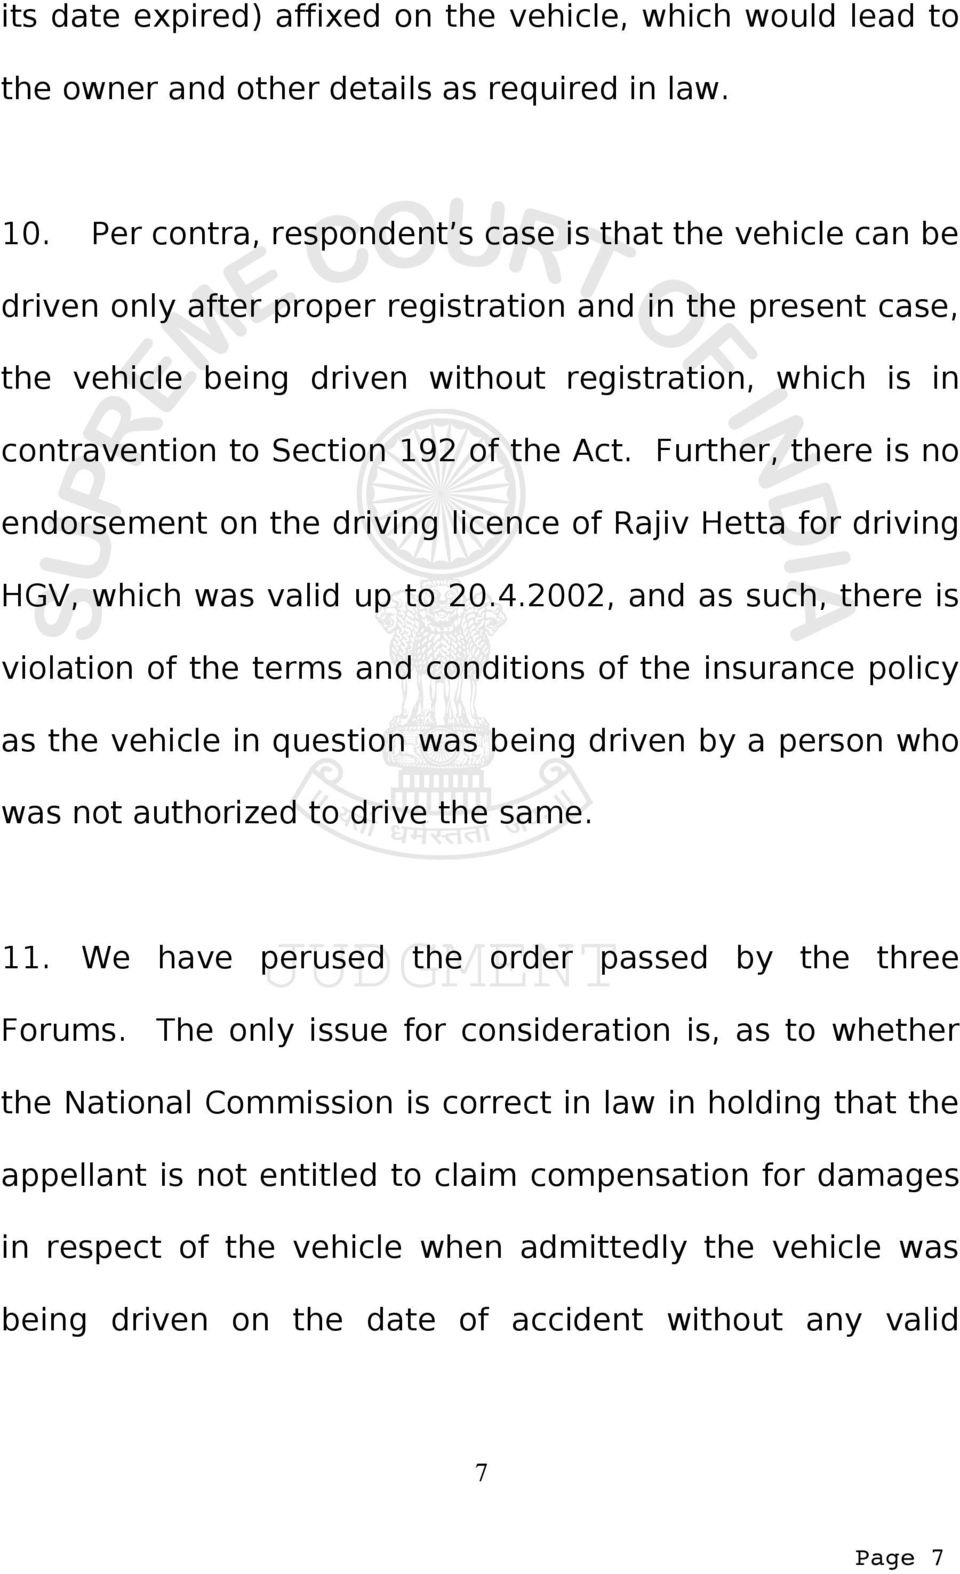 Section 192 of the Act. Further, there is no endorsement on the driving licence of Rajiv Hetta for driving HGV, which was valid up to 20.4.